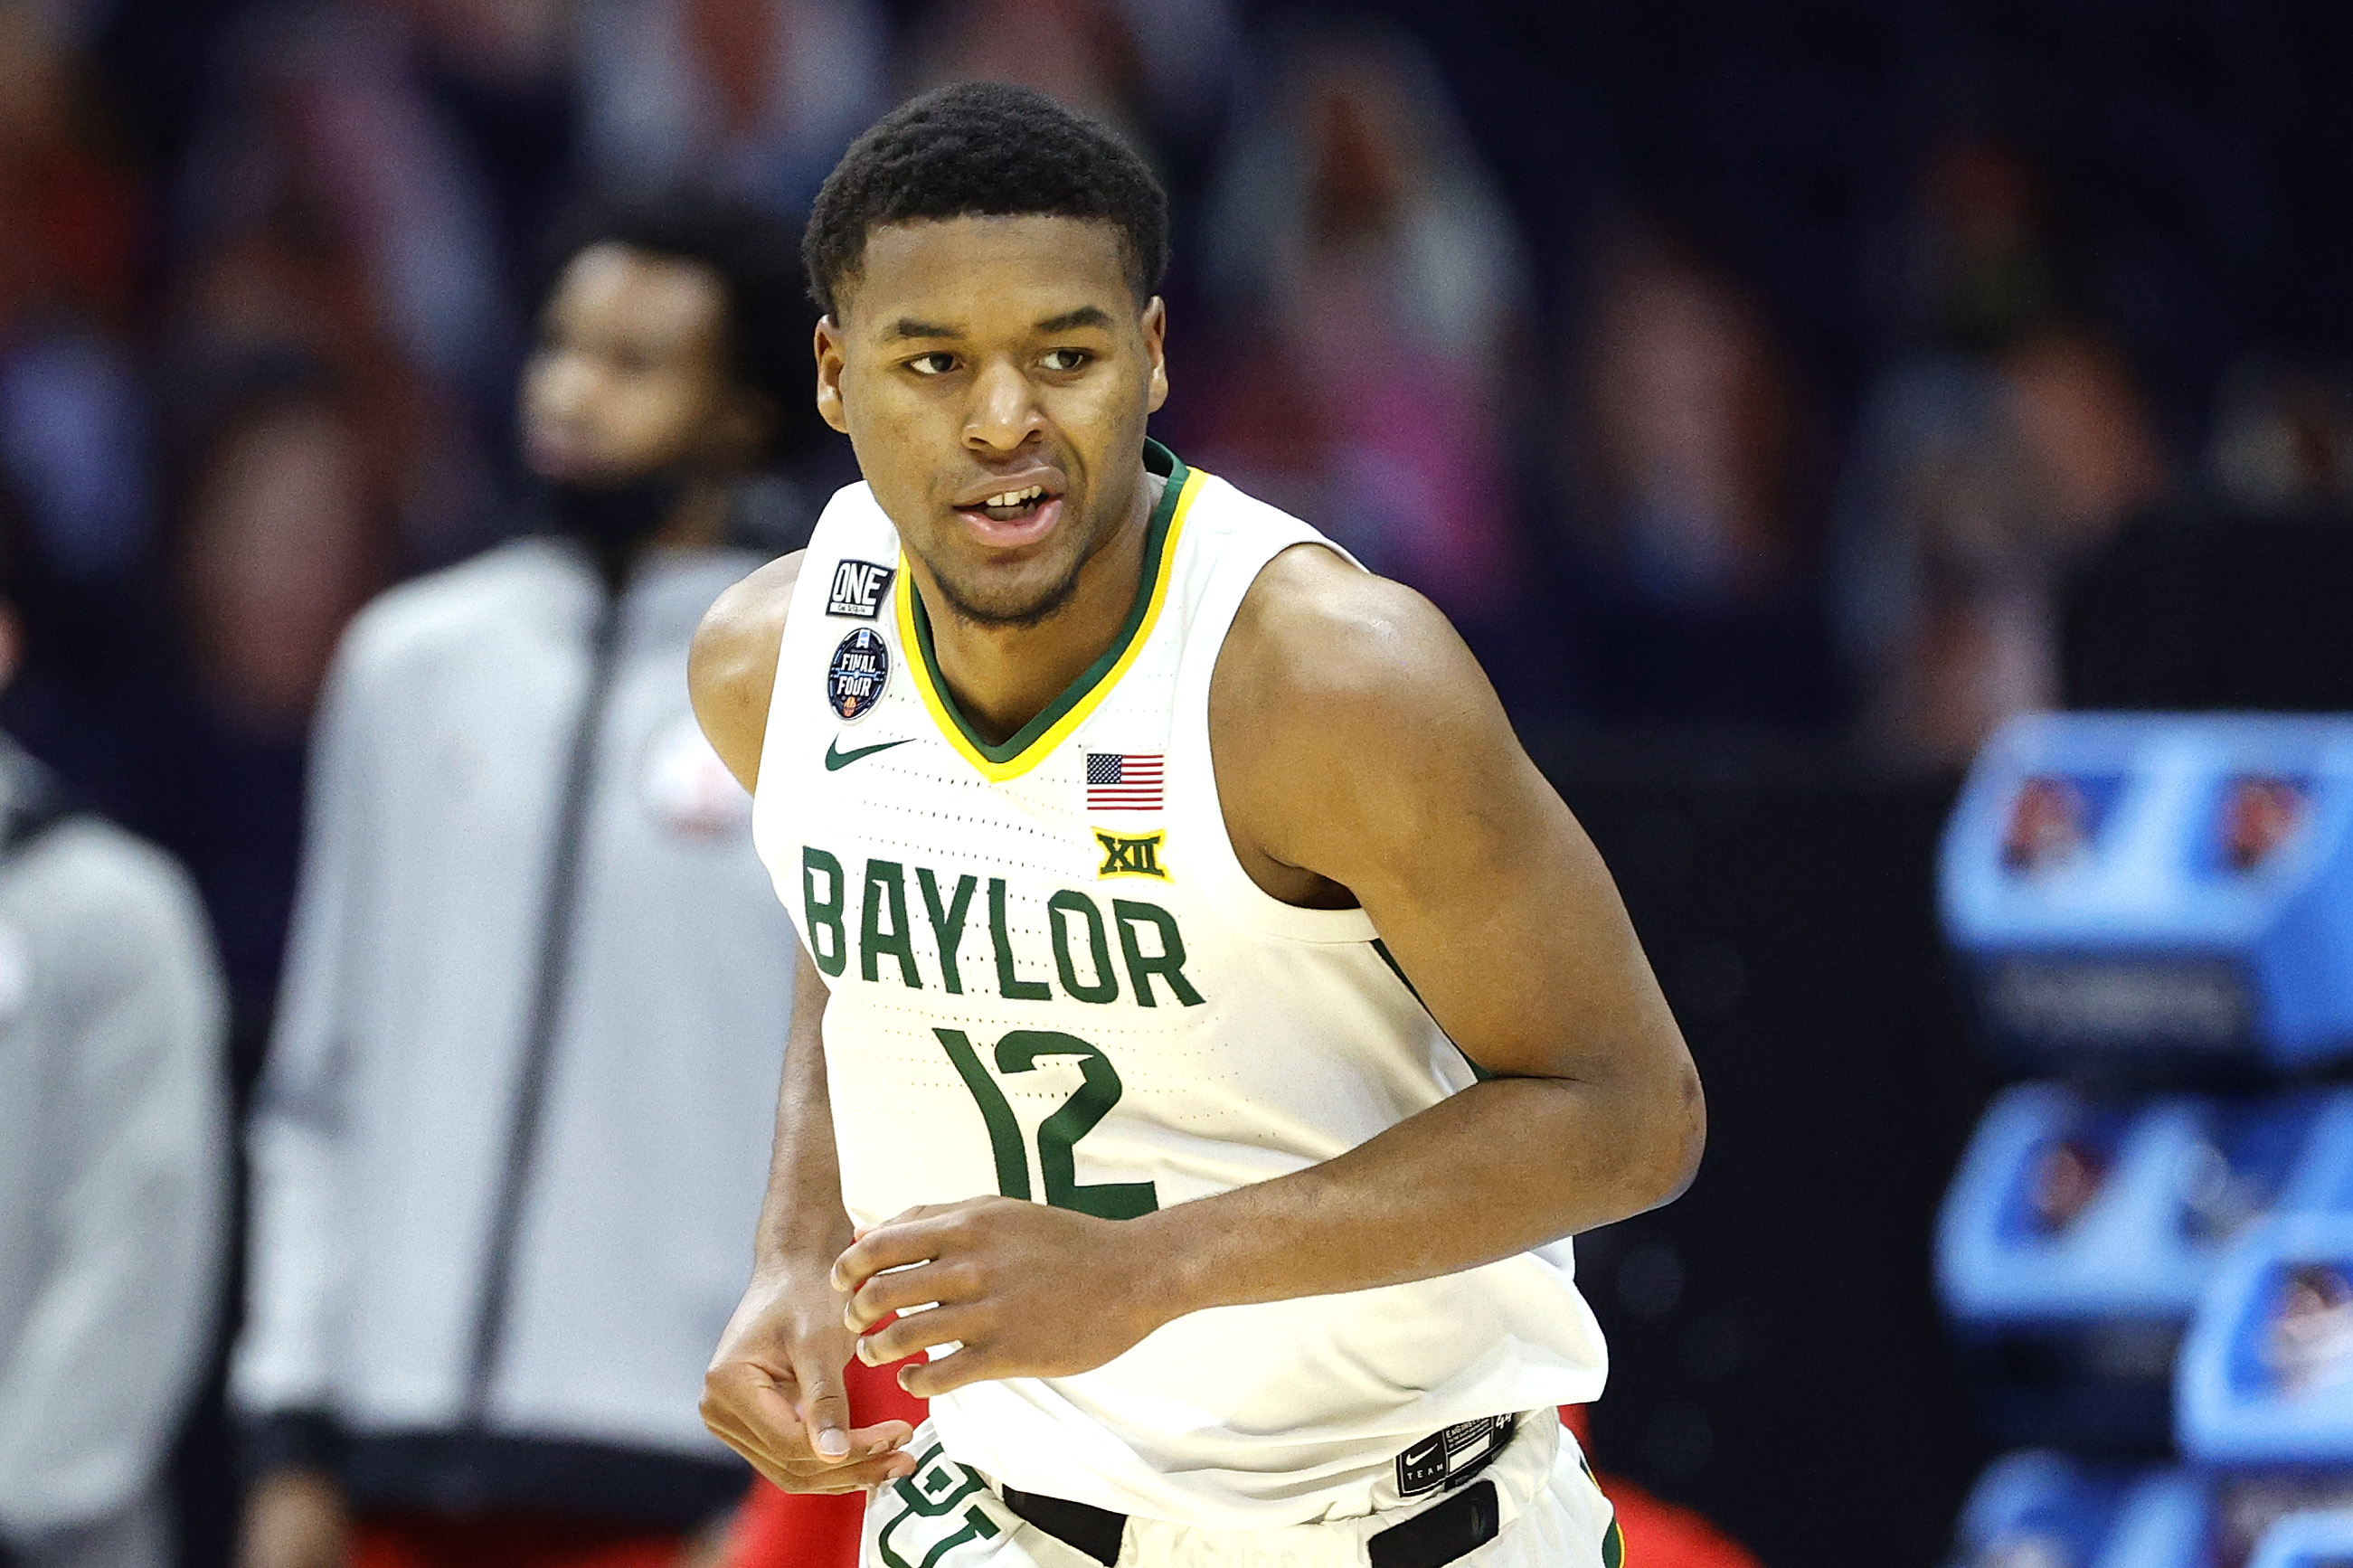 Jared Butler of the Baylor Bears reacts against the Houston Cougars during the 2021 NCAA Final Four semifinal at Lucas Oil Stadium on April 03, 2021 in Indianapolis, Indiana.